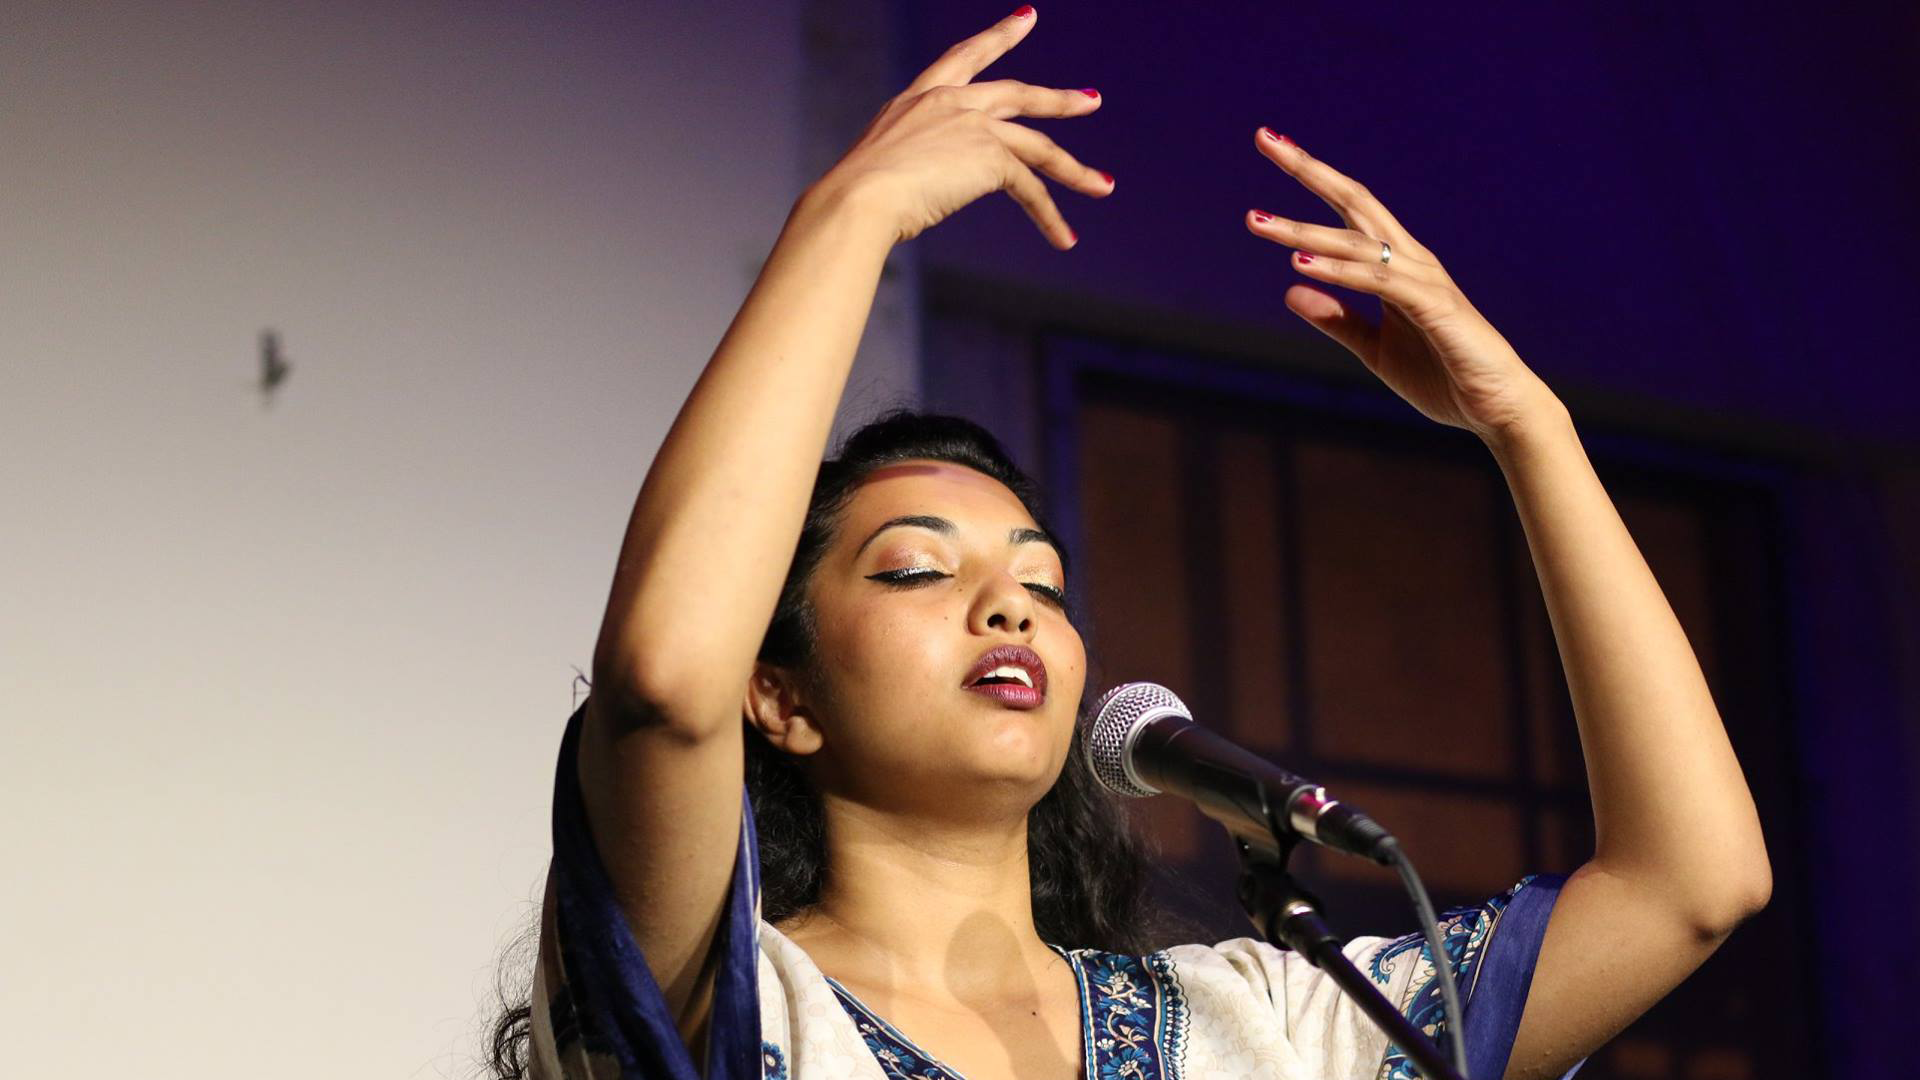 A woman with tied back dark hair and painted lips, raises her arms whilst speaking into a mic on stafe